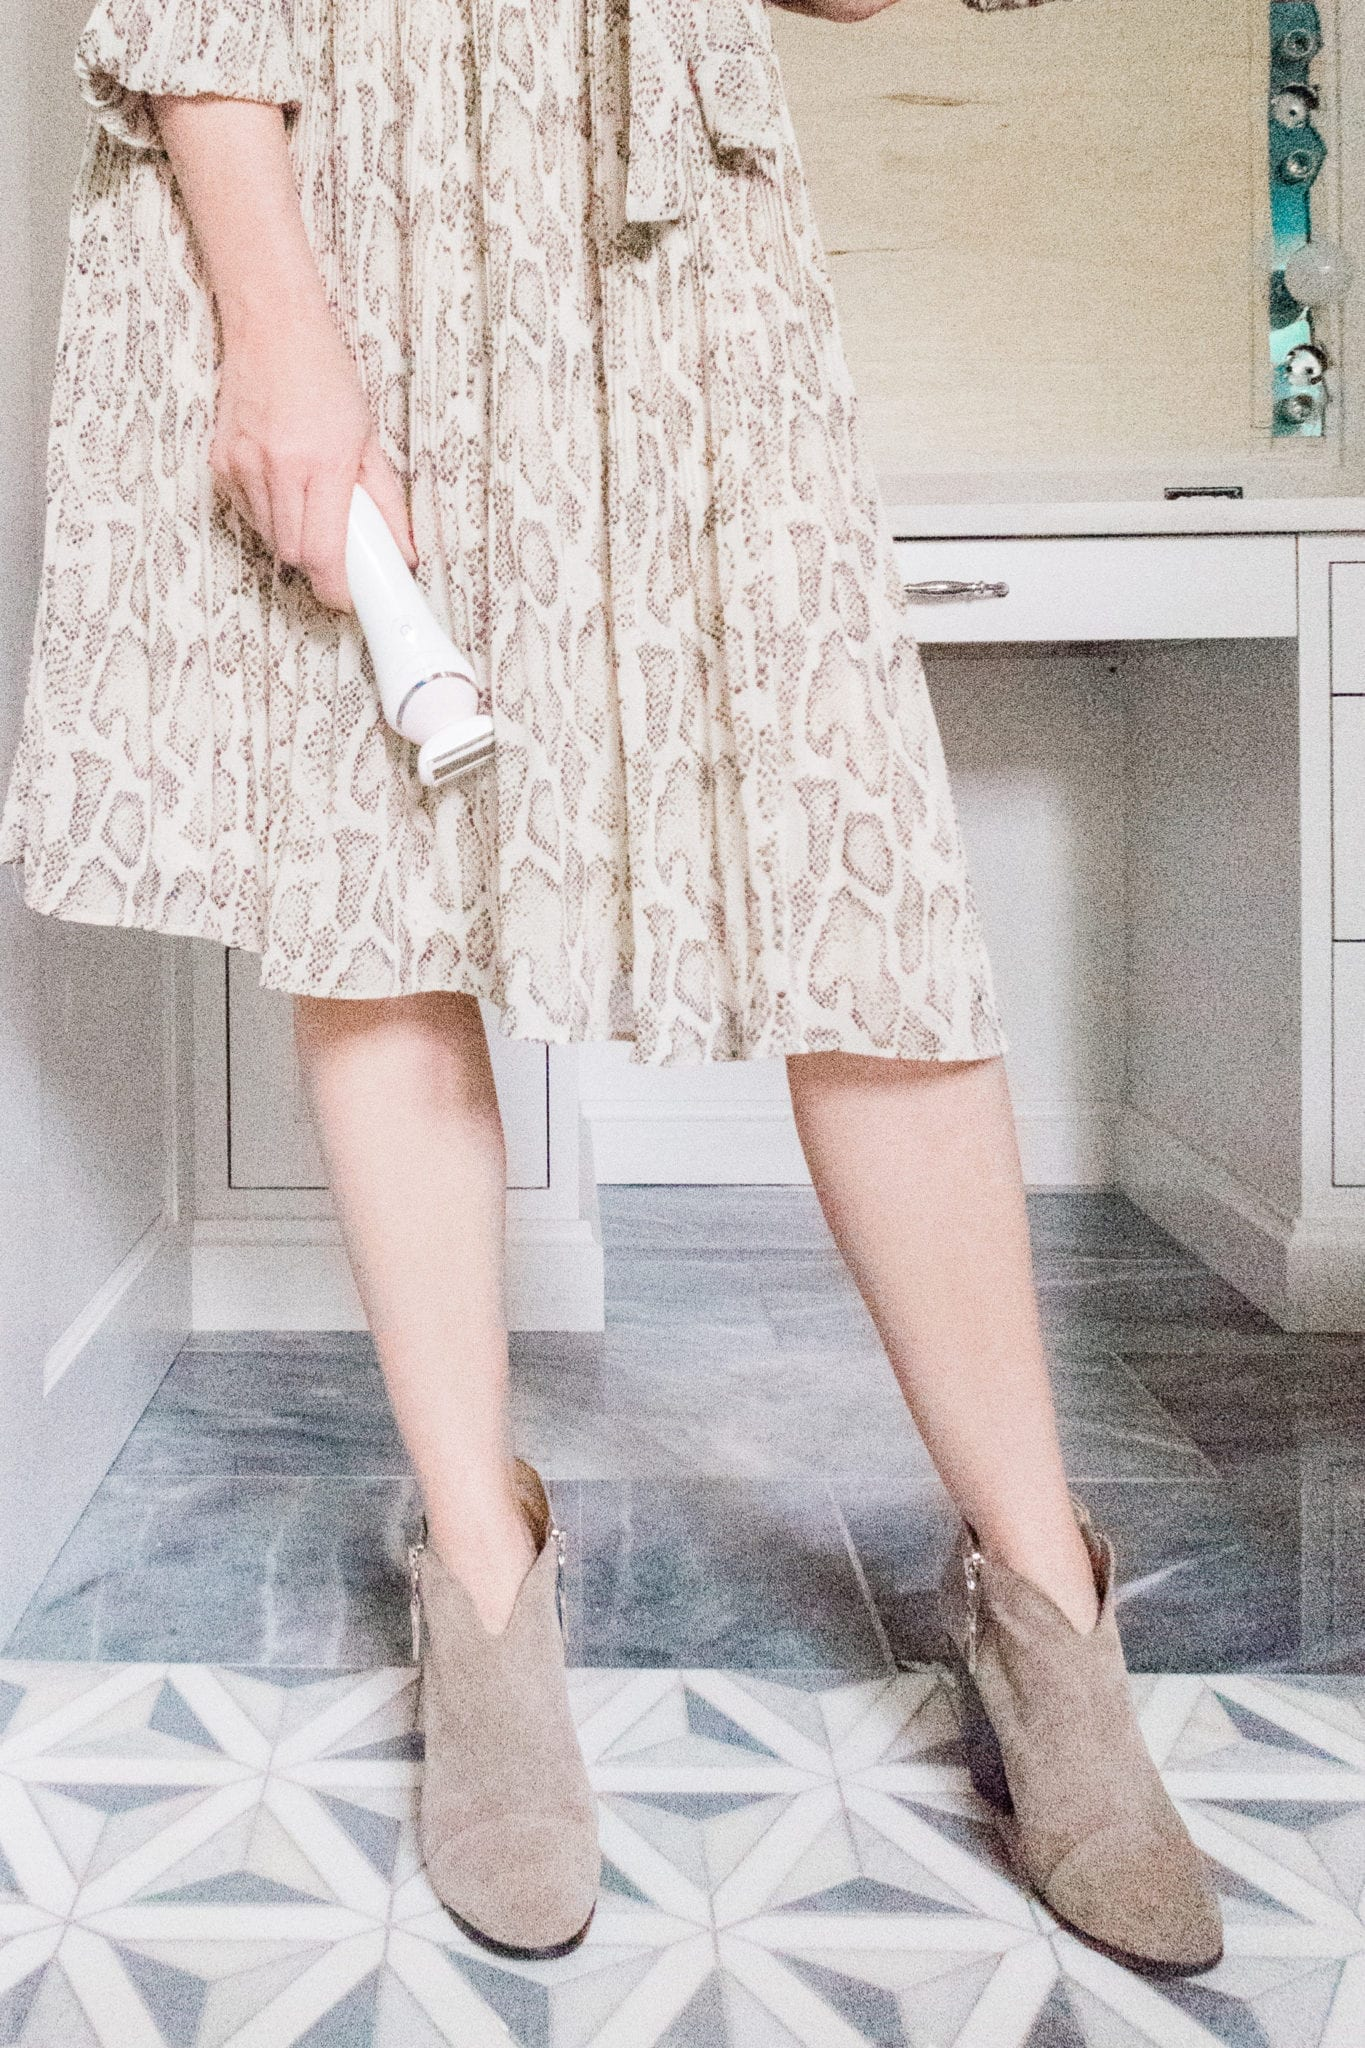 Shaving with winter skin. How to keep winter skin soft. Philips Electric Razor. Suede booties and Anthropologie dress.